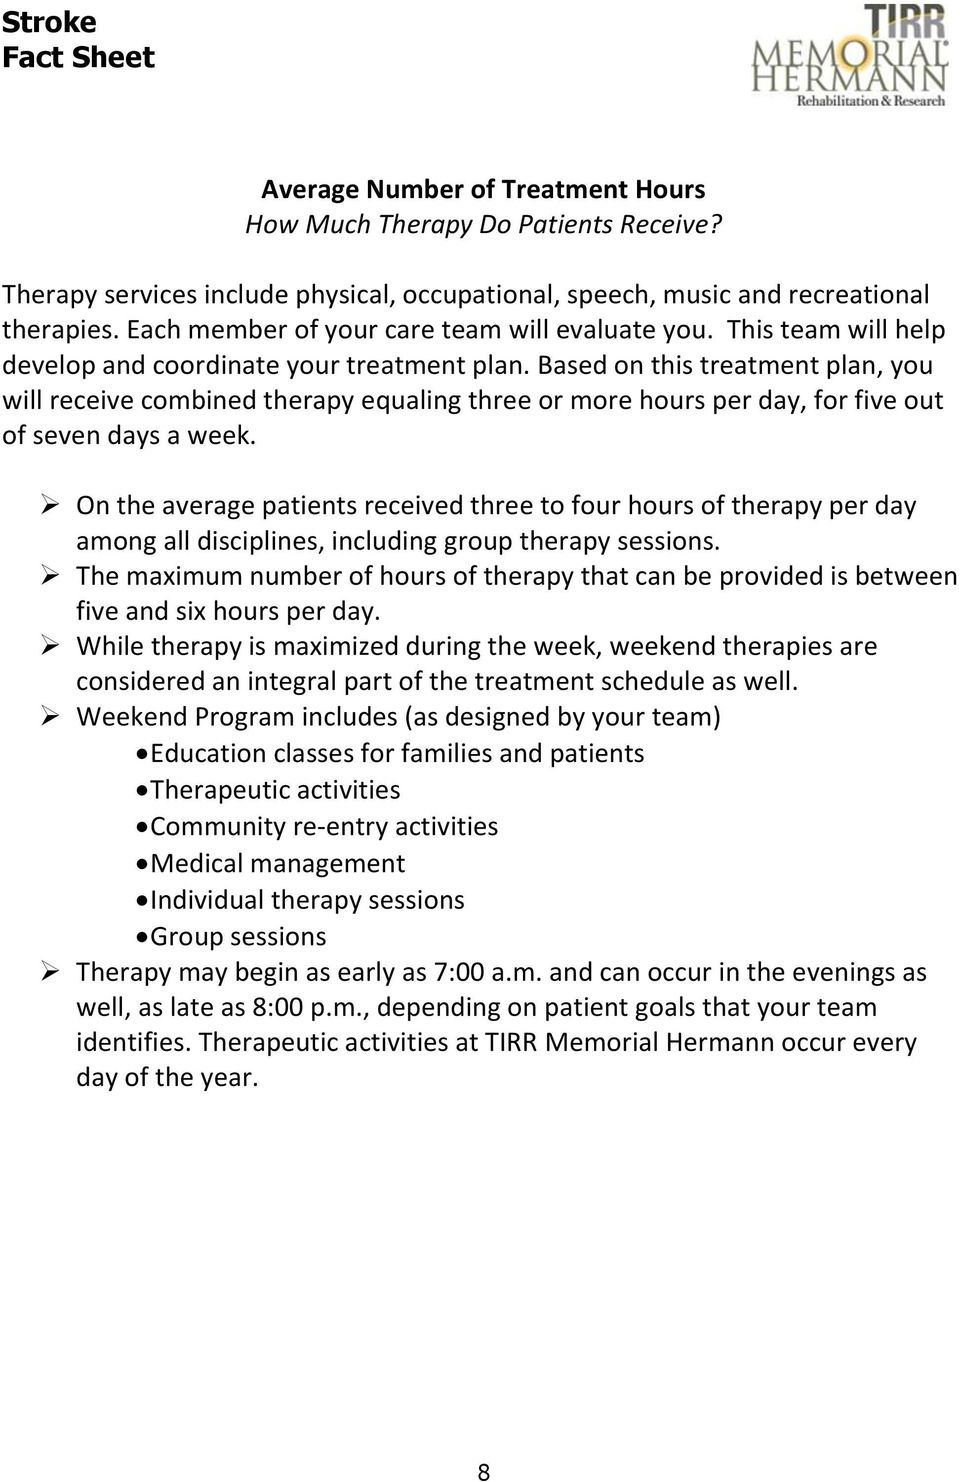 Based on this treatment plan, you will receive combined therapy equaling three or more hours per day, for five out of seven days a week.